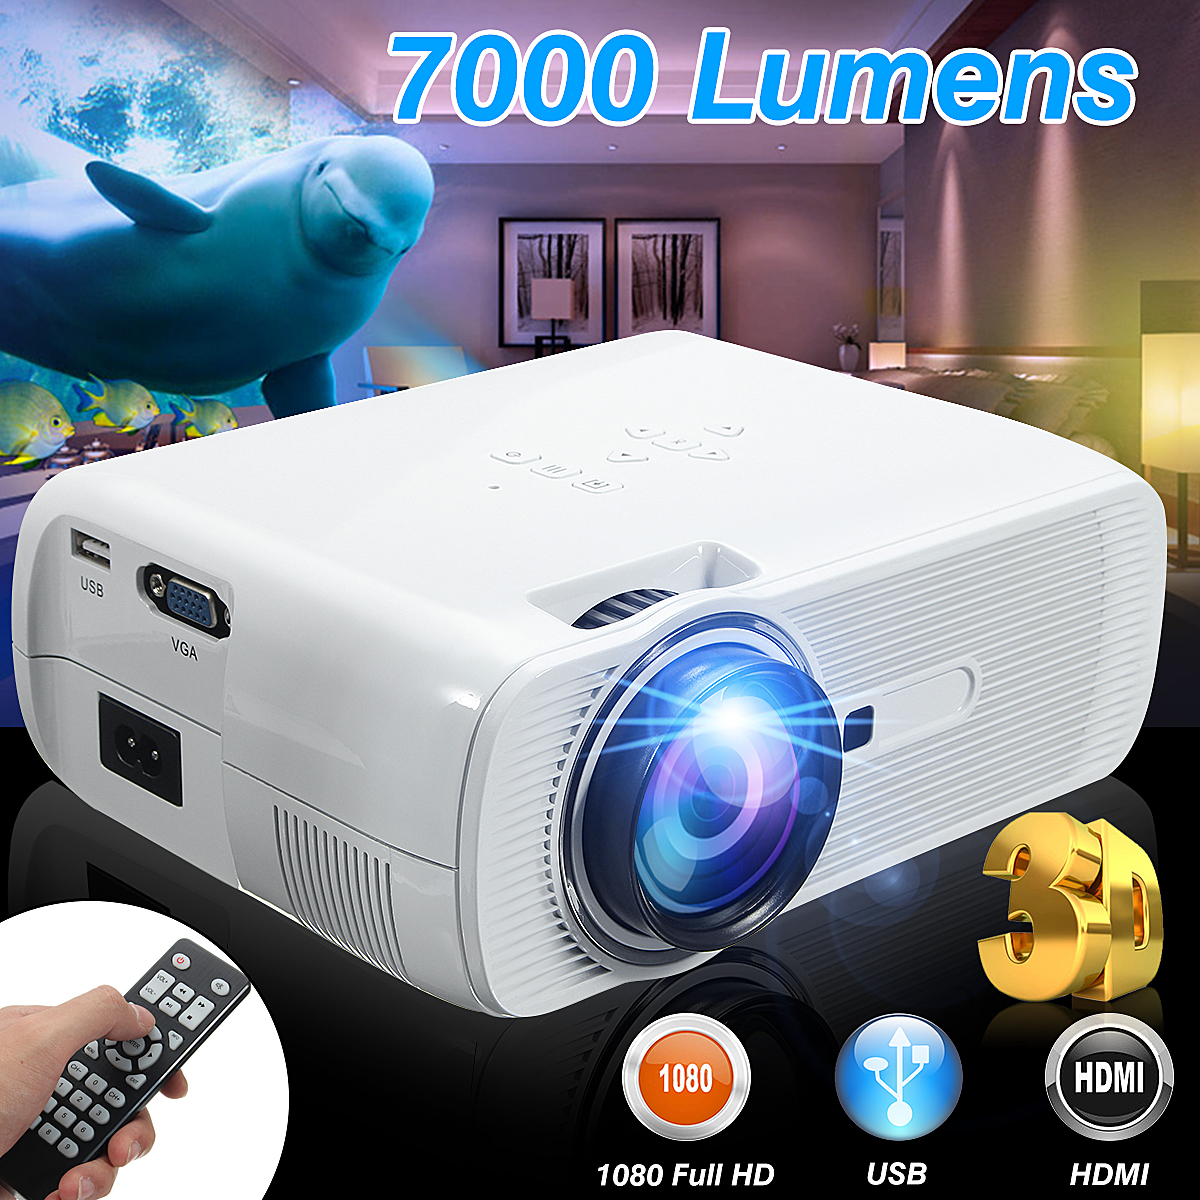 7000 Lumens HD LED Projector 3D Large Screen Home Theater Cinema LCD Wireless HDMI AV/VGA/USB/SD/HDMI/TV Multimedia Beamer early educational machine for children built in speakers hdmi mini led entertainment projector home cinema theater new arrival